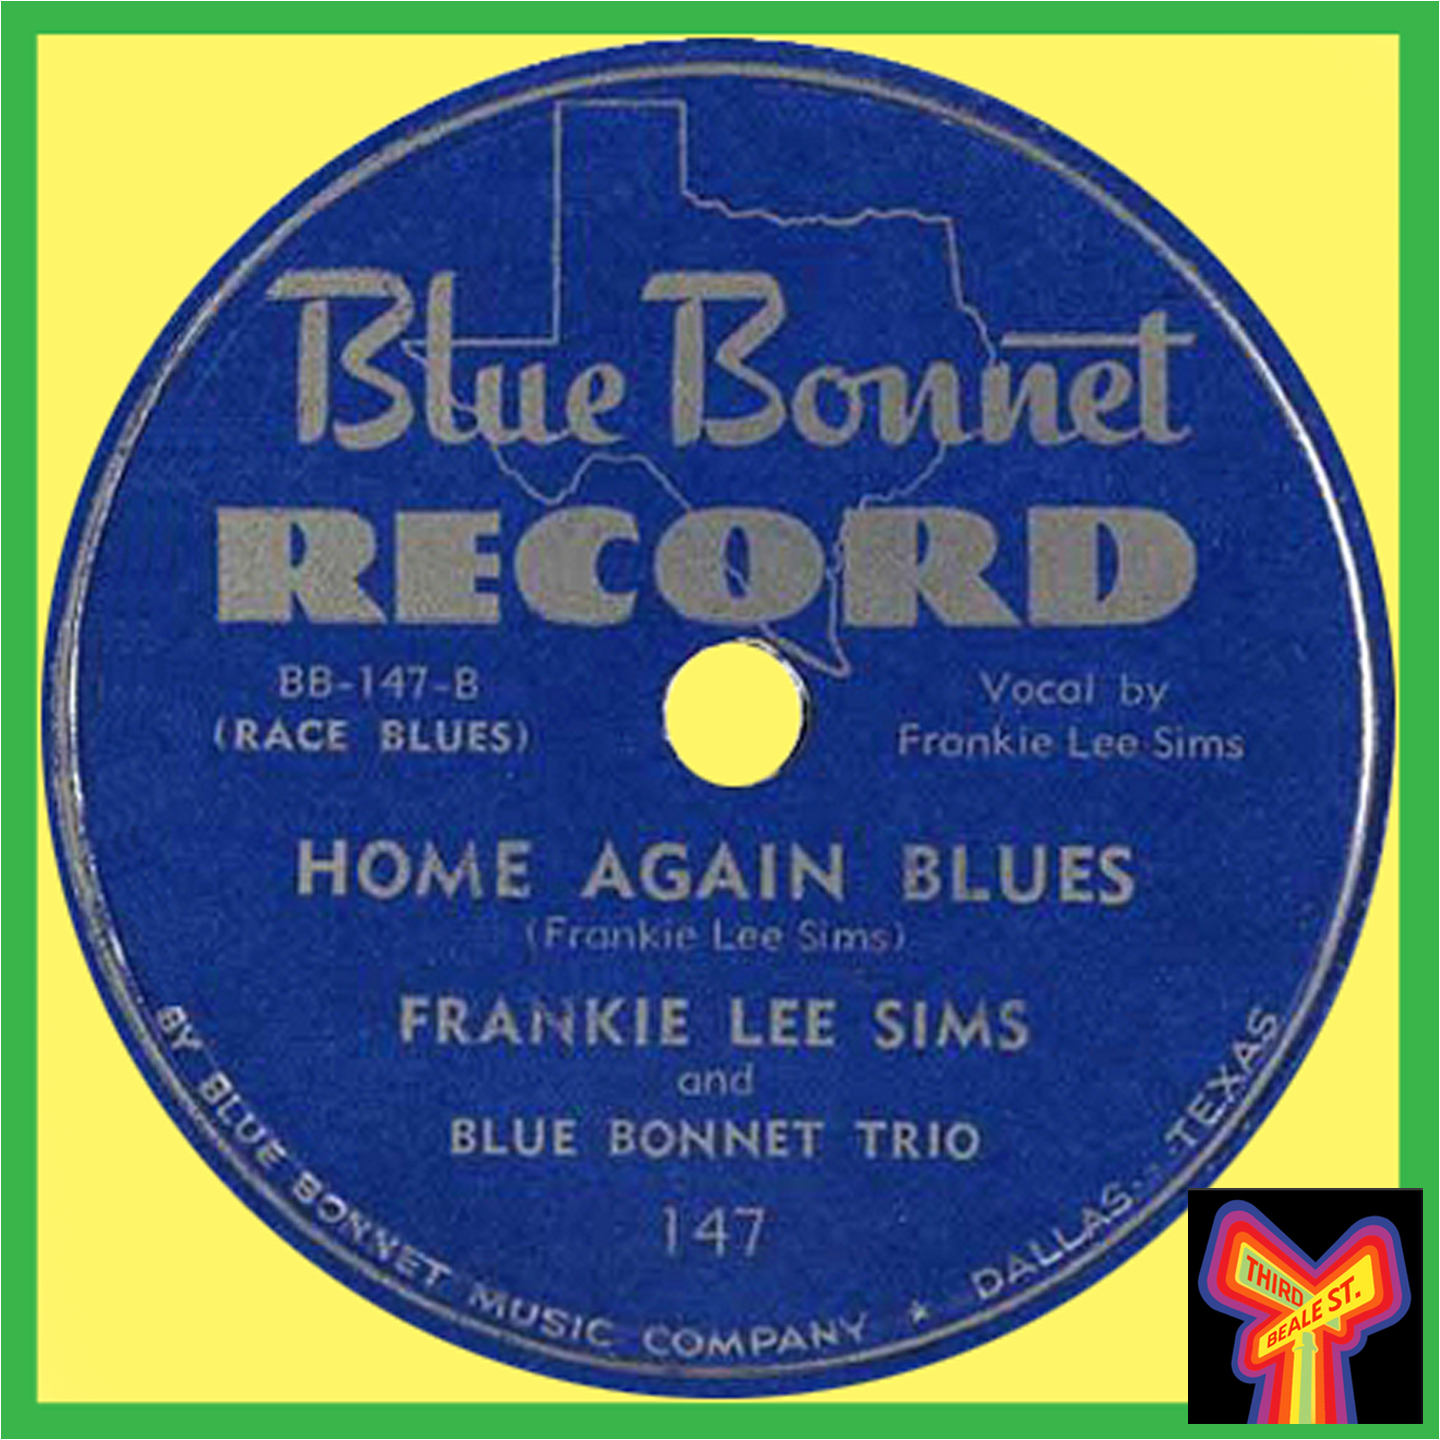 Caption: Frankie Lee Sims, making his recording debut on Texas' very own Blue Bonnet label, in 1948.